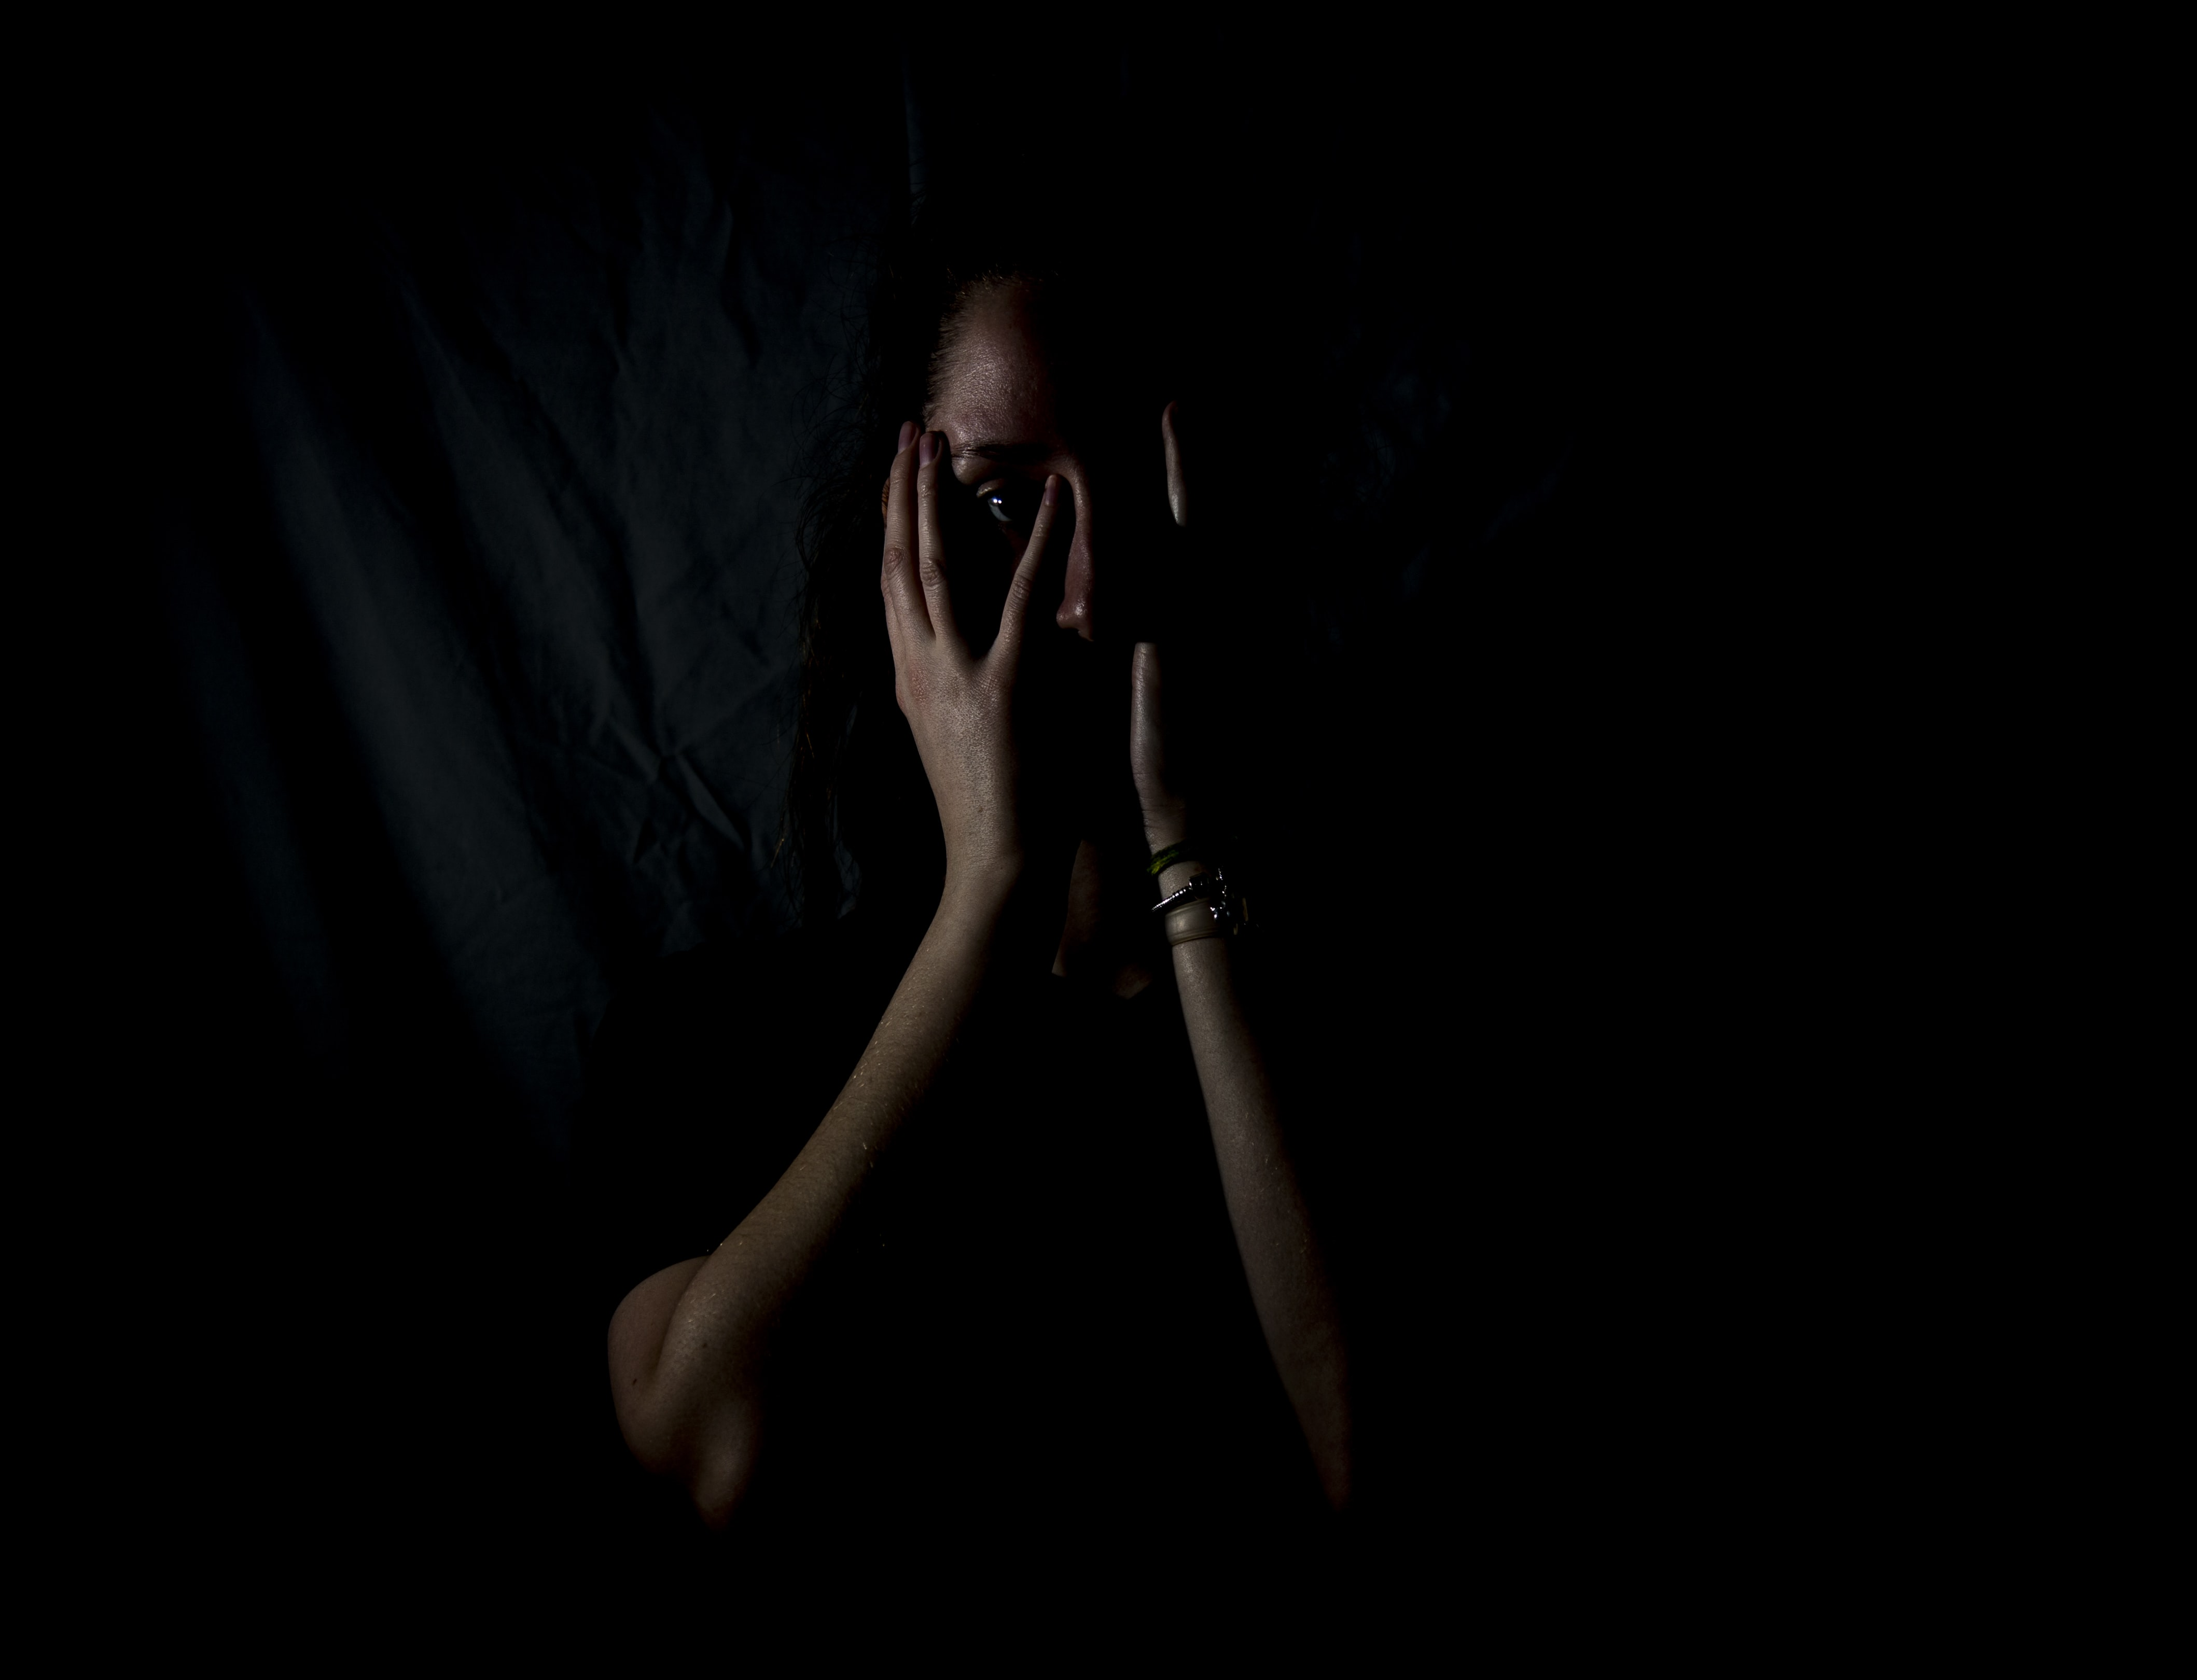 woman holding her face in dark room